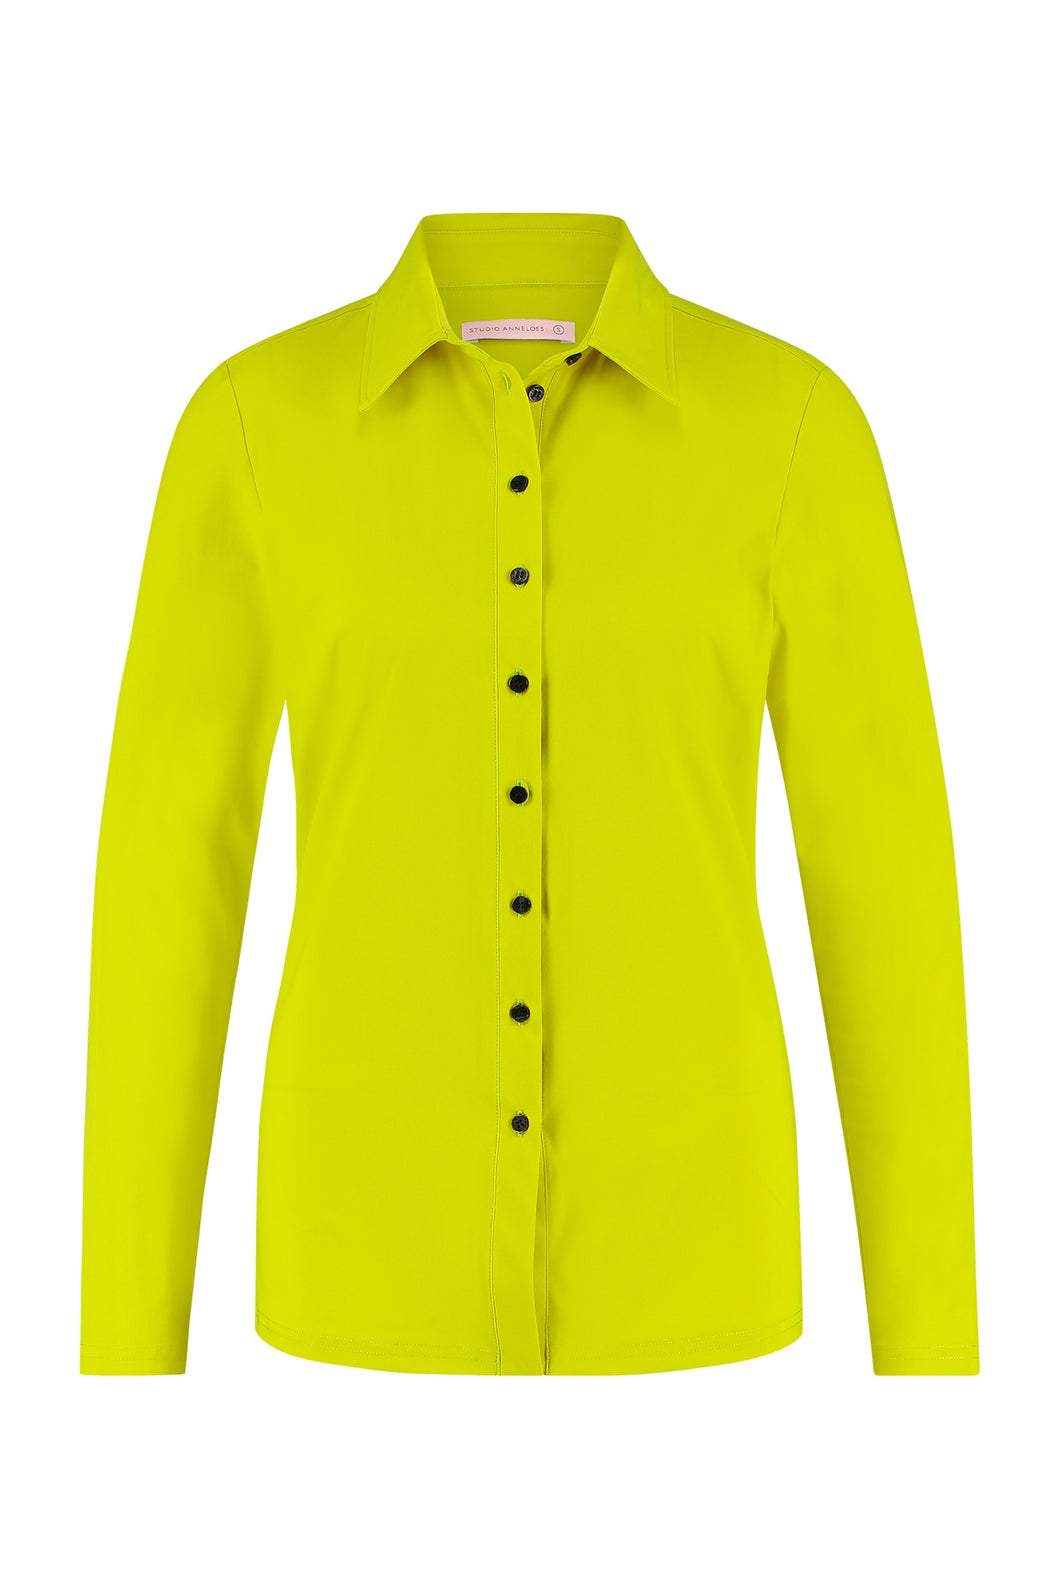 Poppy shirt lime